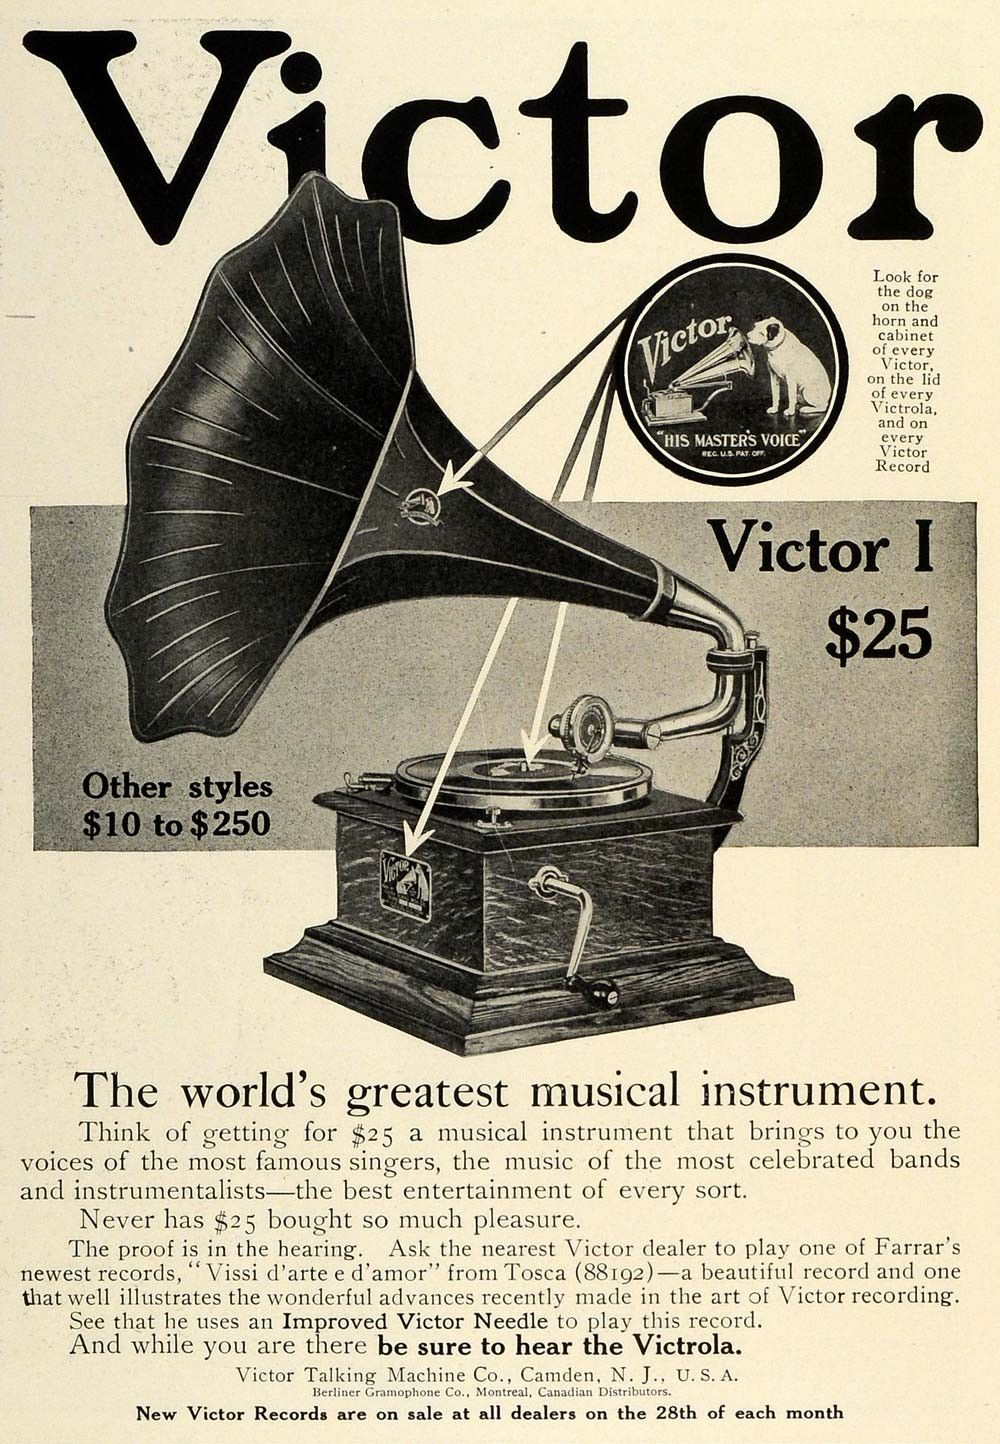 Victor gramophone advertising, early 1920s